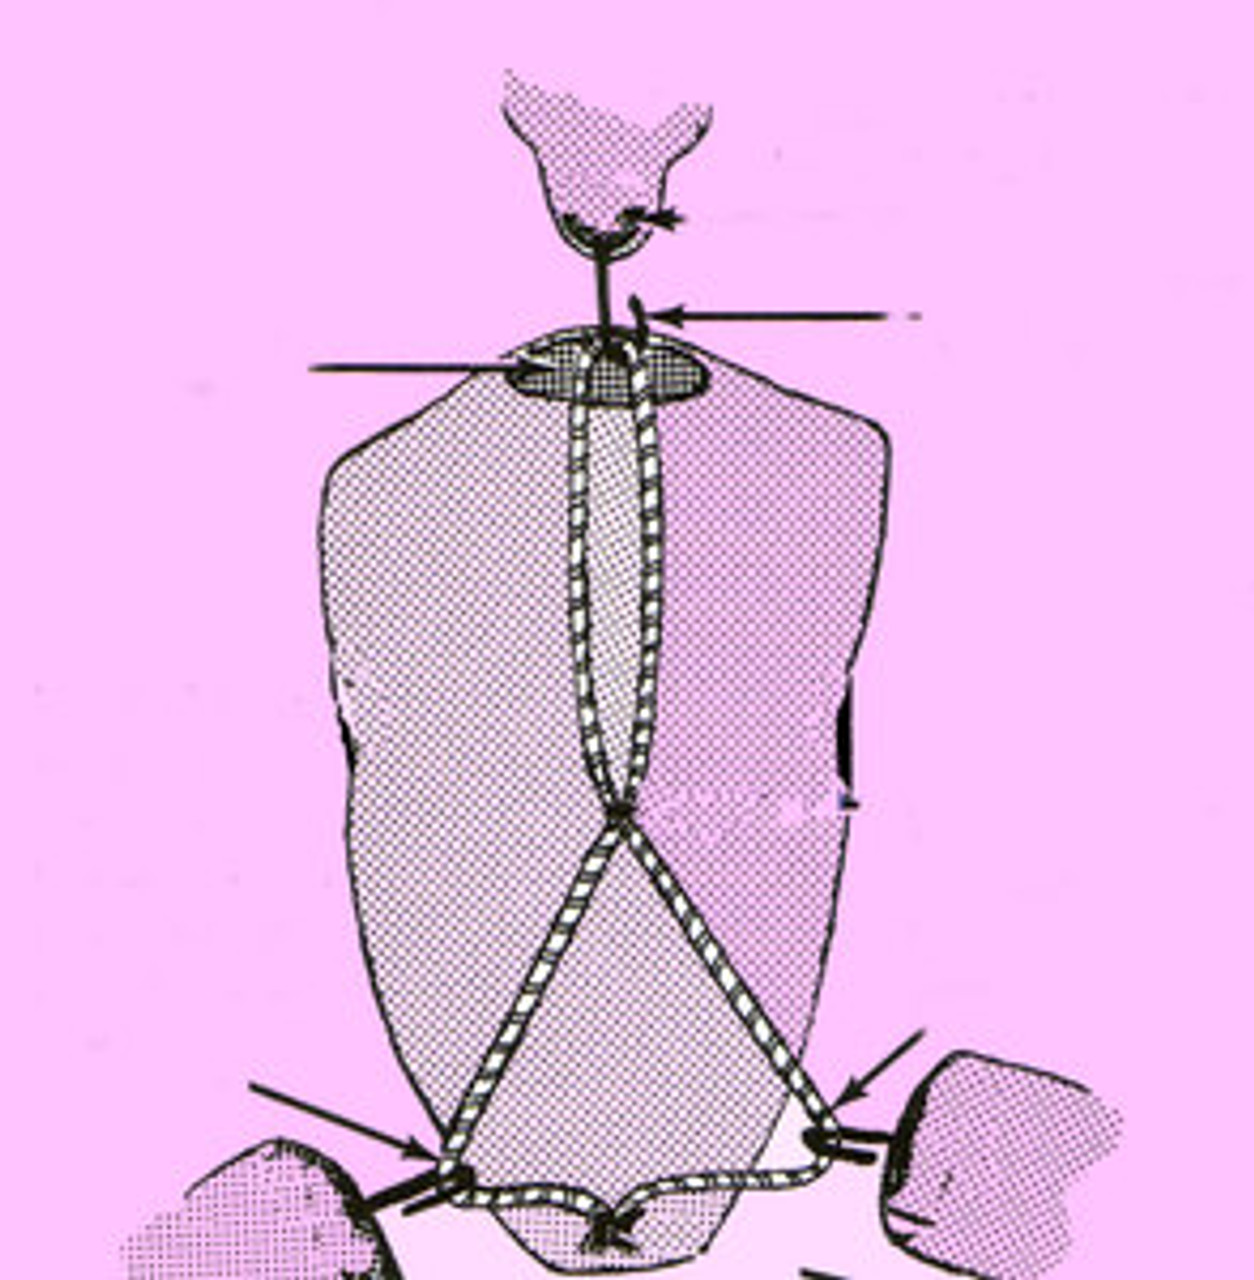 Doll Stringing / Restringing Kit